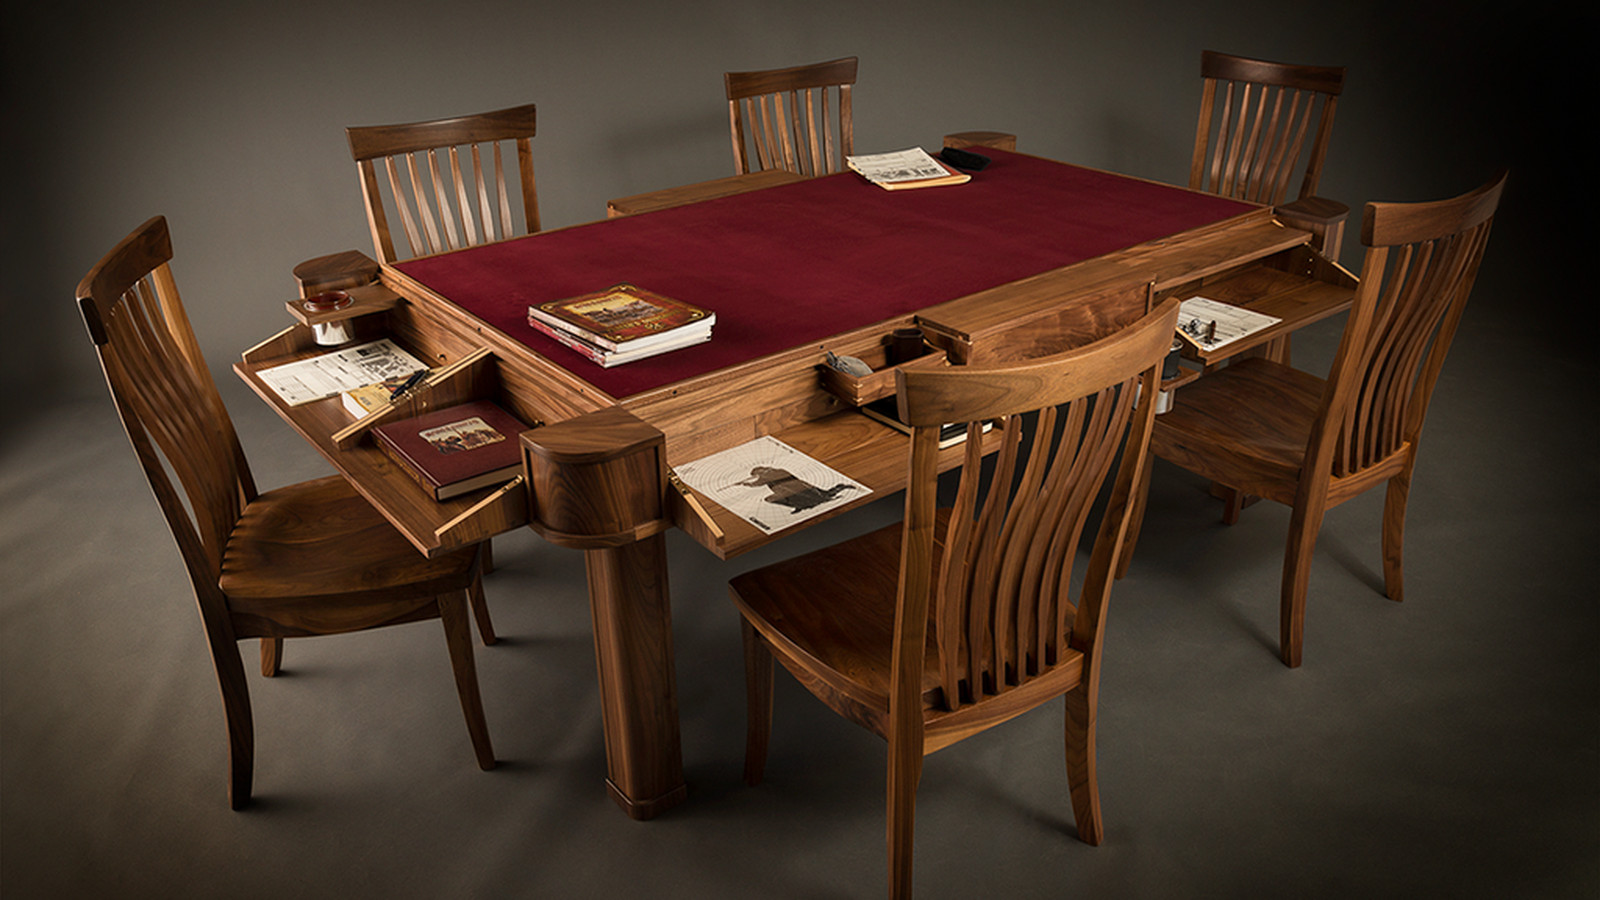 Geek Chic, maker of exquisite gaming tables, has gone out of business